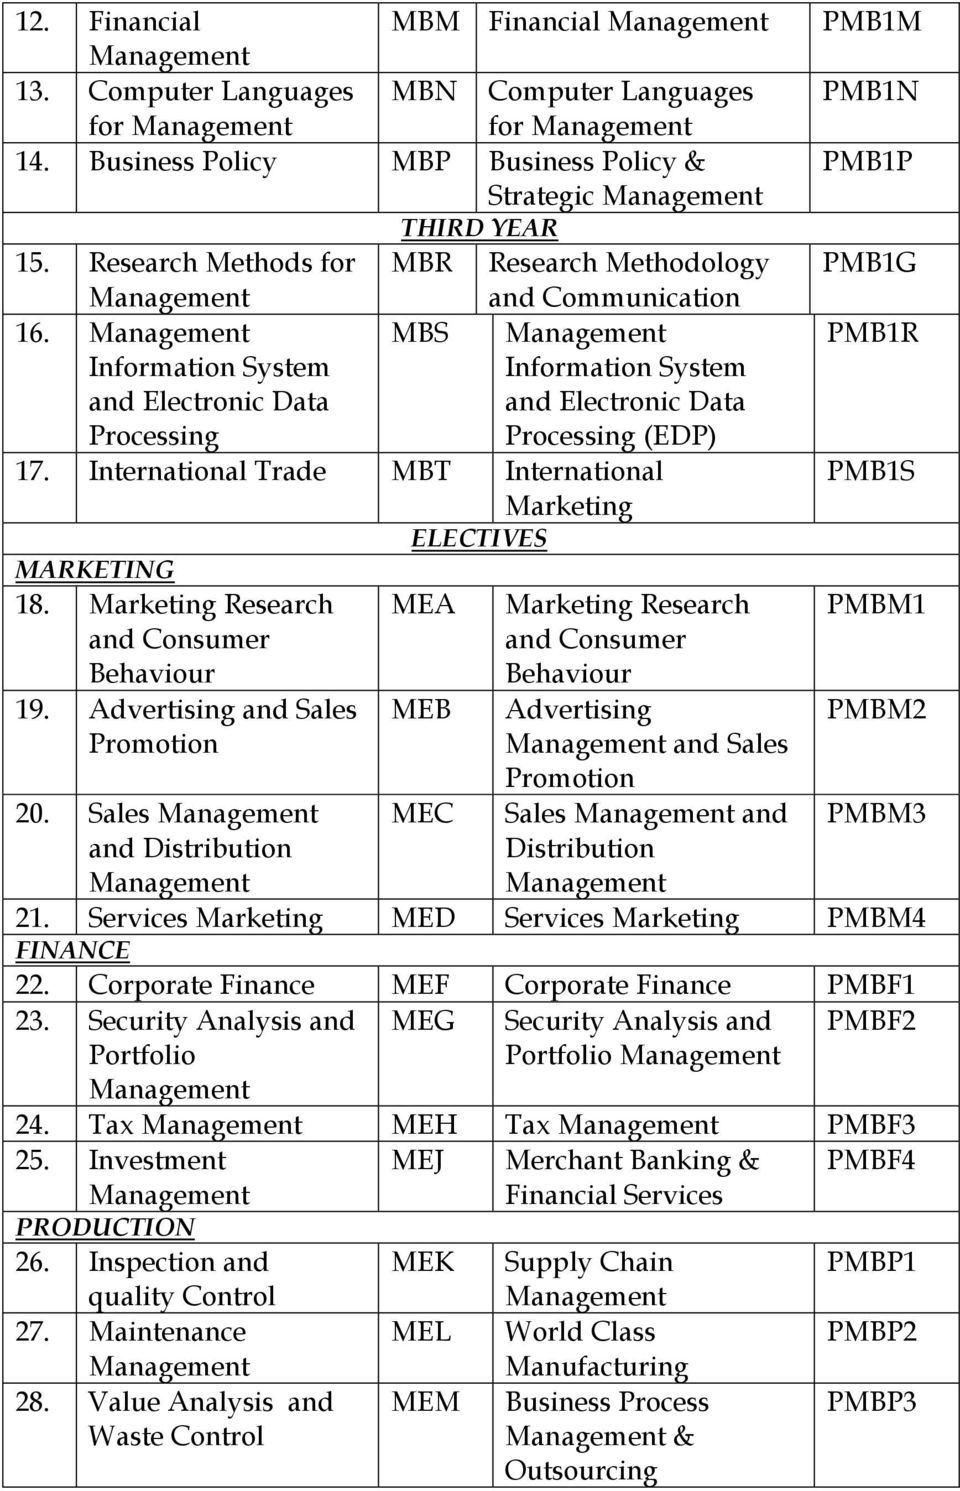 Advertising and Sales 20. Sales and Distribution ELECTIVES MEA MEB MEC Advertising and Sales Sales and Distribution PMBM1 PMBM2 PMBM3 21. Services MED Services PMBM4 FINANCE 22.